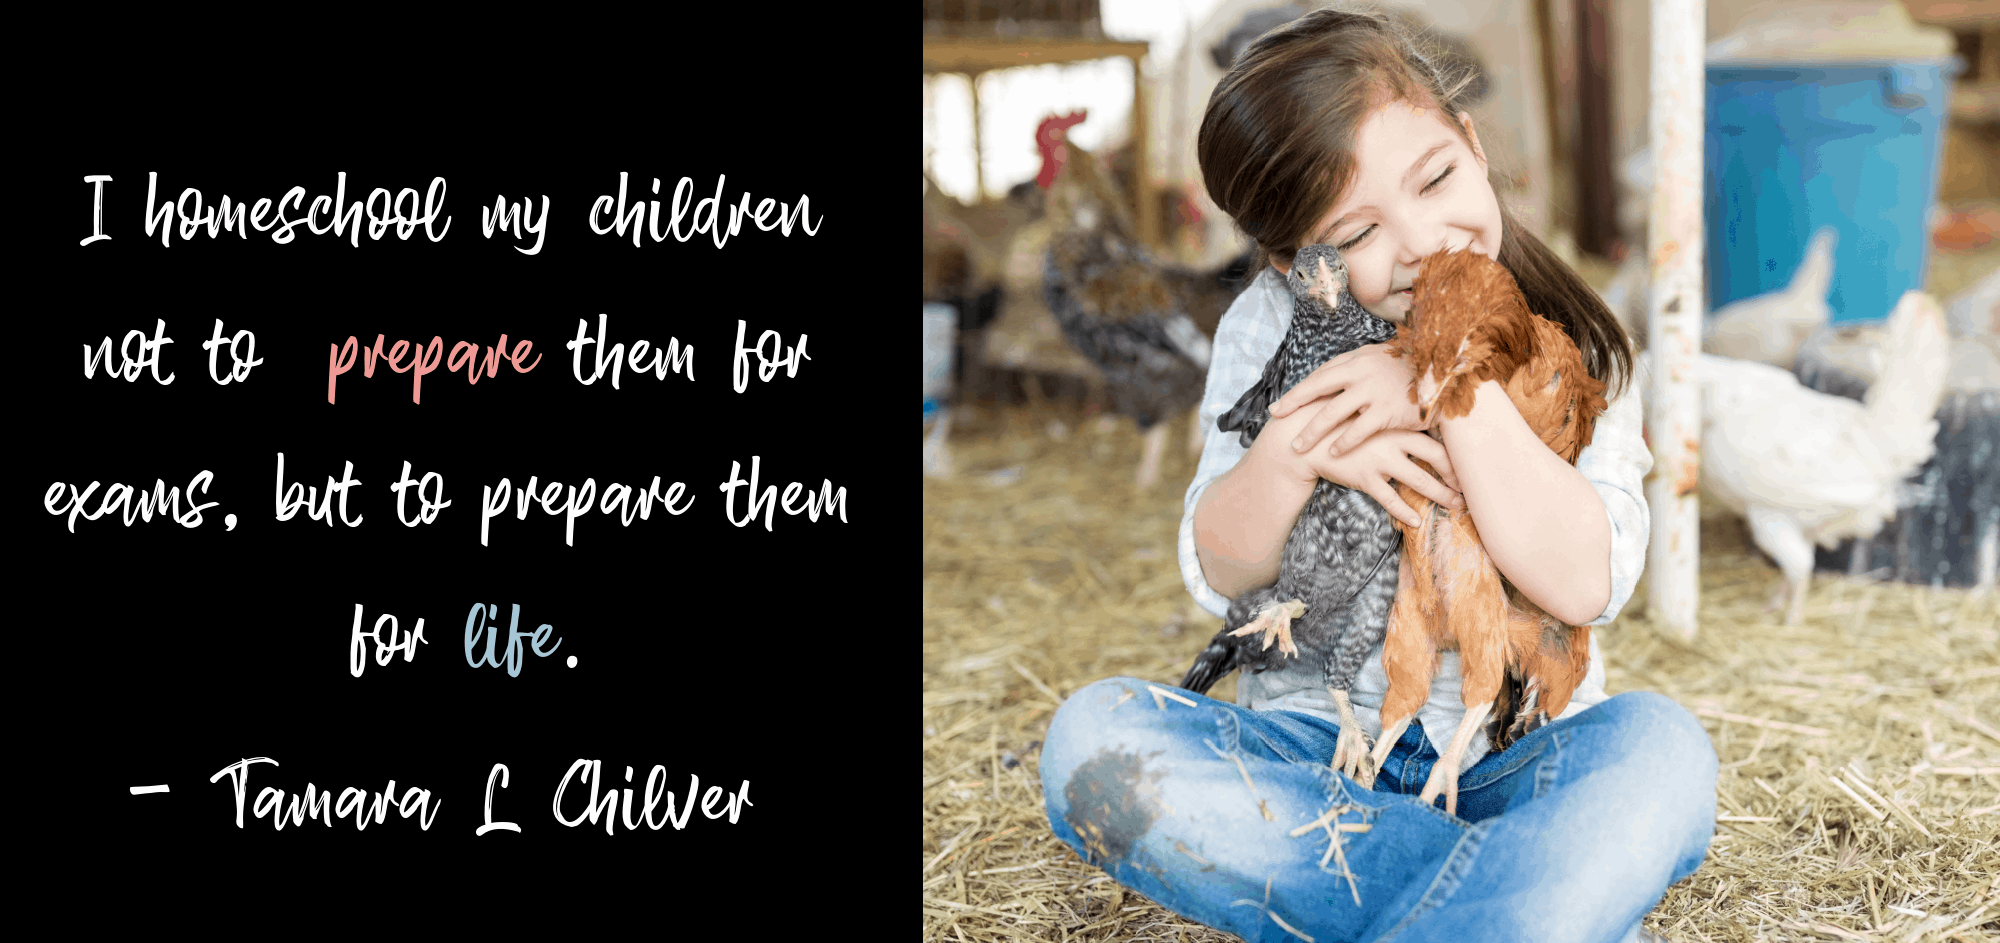 """Homeschooling Quote - """"I homeschool my children not to prepare them for exams, but to prepare them for life."""" - Tamara L Chilver  Photo of young girl holding chickens at home farm."""